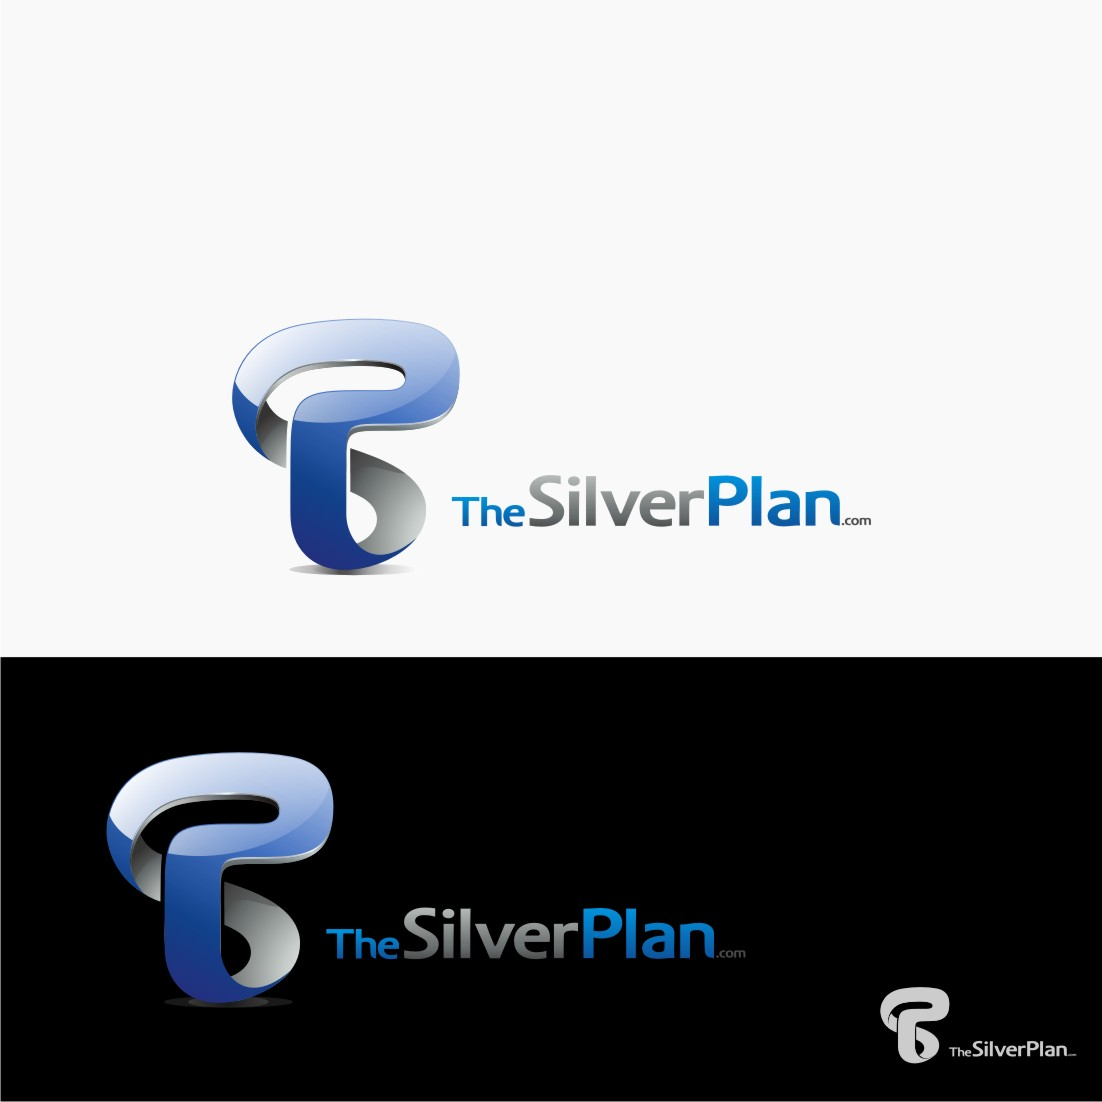 Logo Design by graphicleaf - Entry No. 68 in the Logo Design Contest New Logo Design for TheSilverPlan.com.